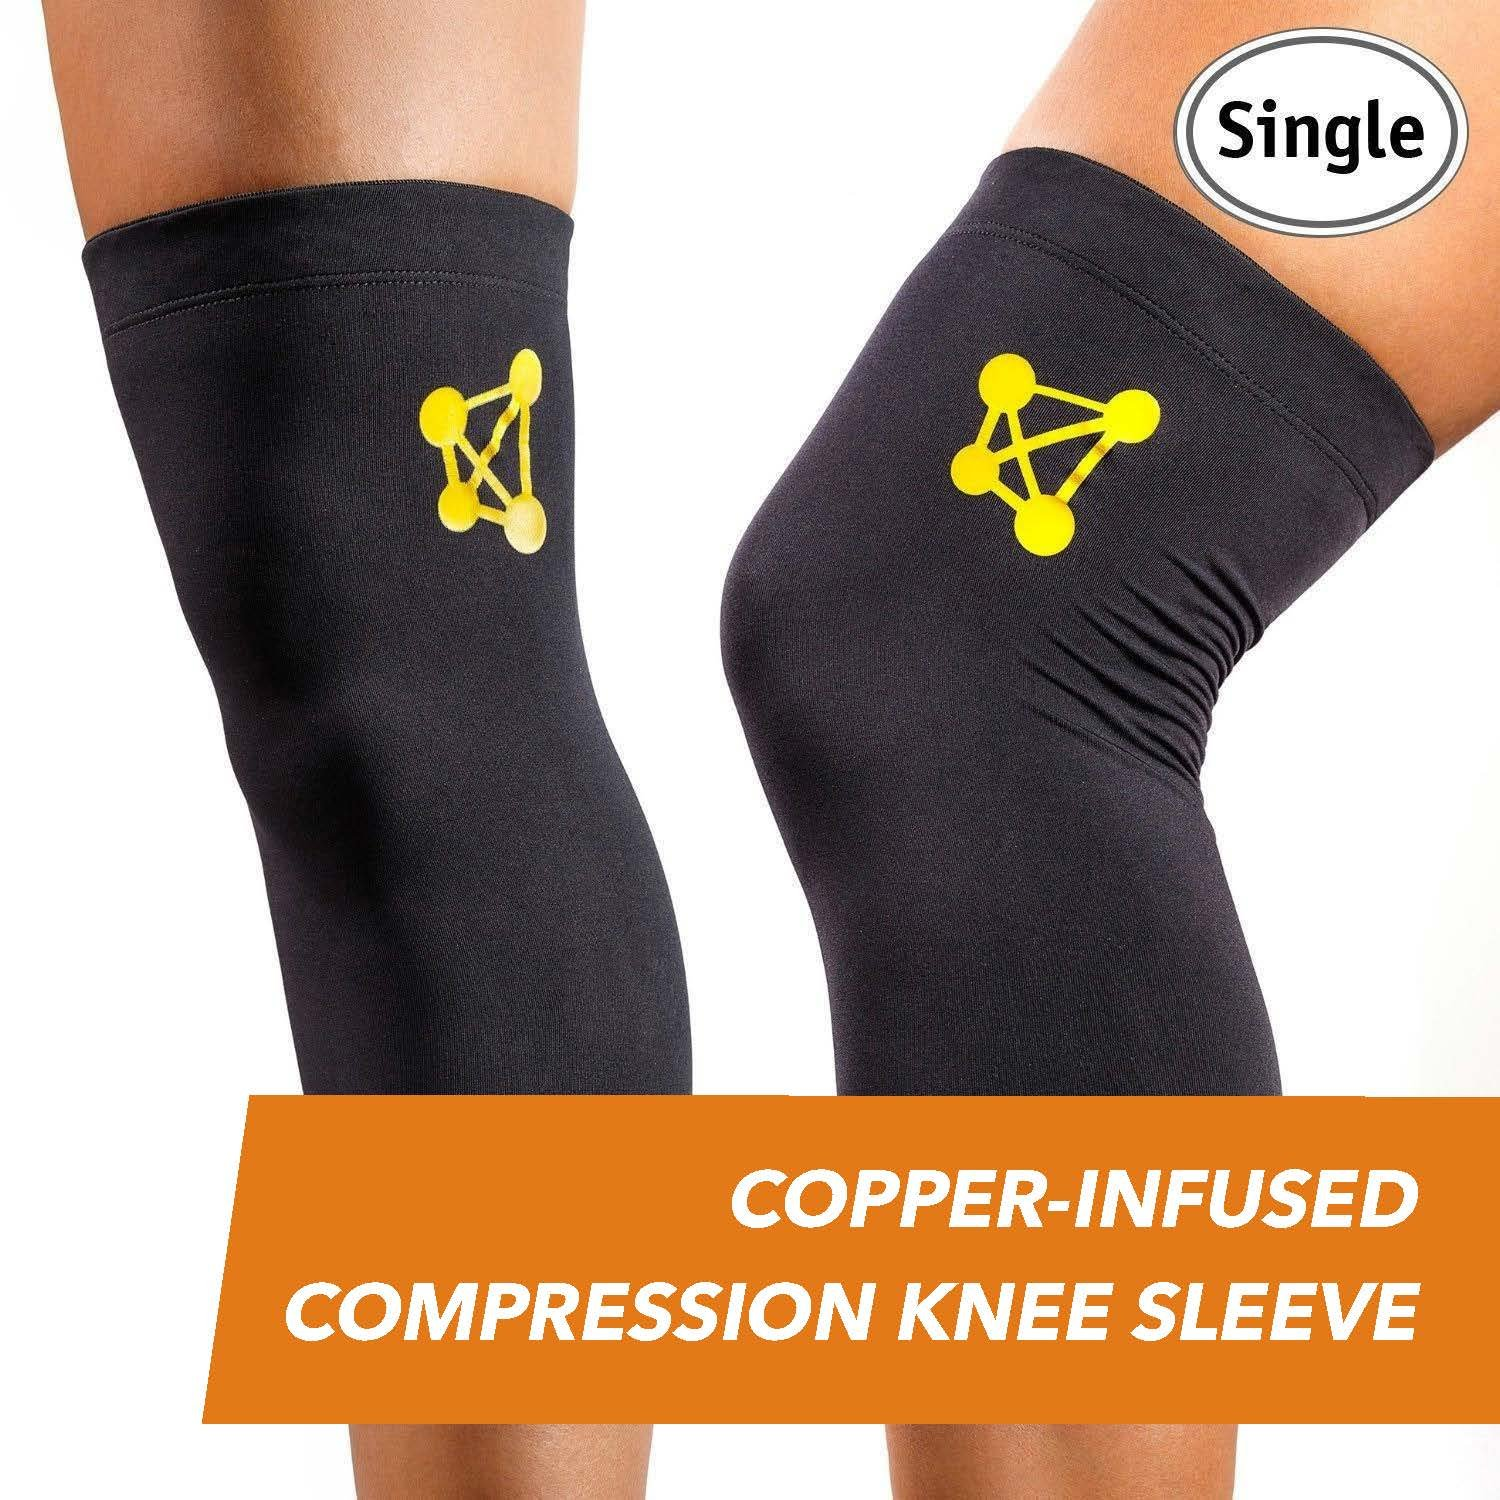 2c1f8157c05364 CopperJoint – Compression Knee Sleeve Copper-Infused, Promotes Increased  Blood Flow to The Knee While Supporting Tendons & Ligaments for All  Lifestyles, ...